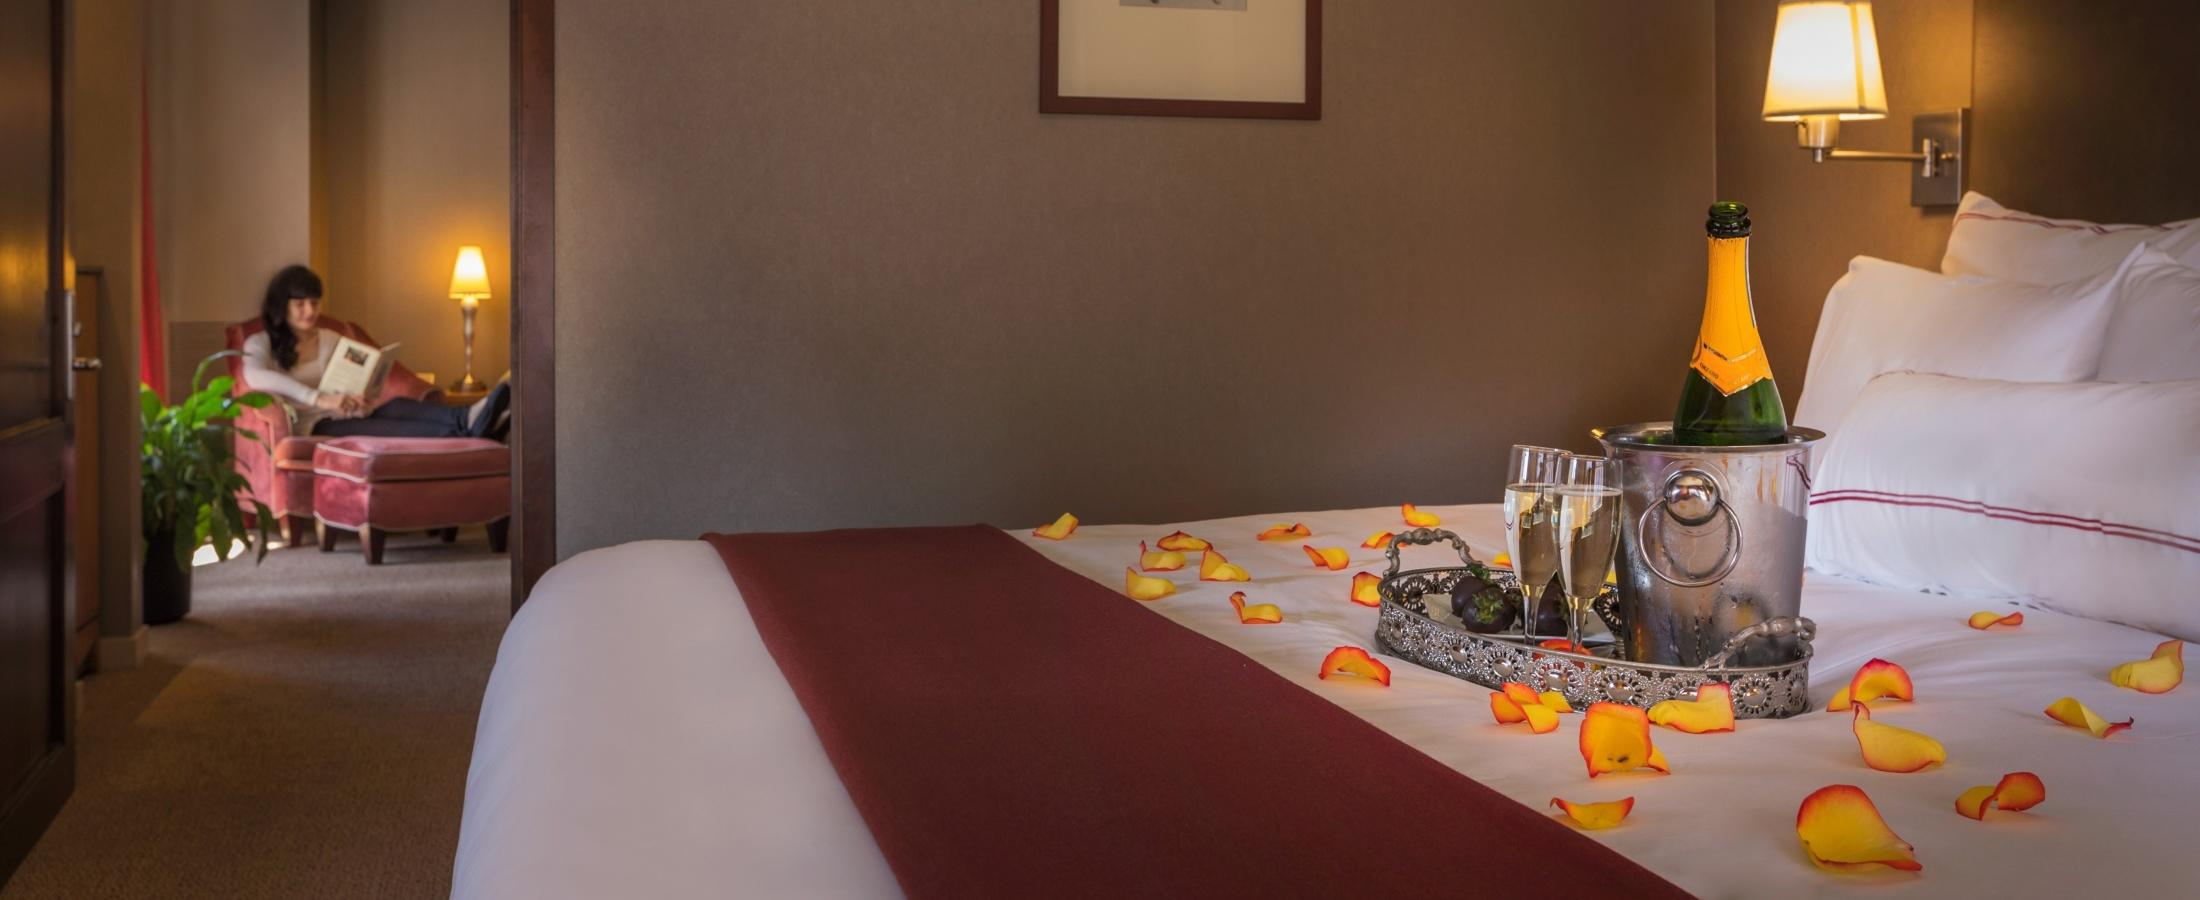 Rose petals, prosecco and chocolate strawberries set up on bed